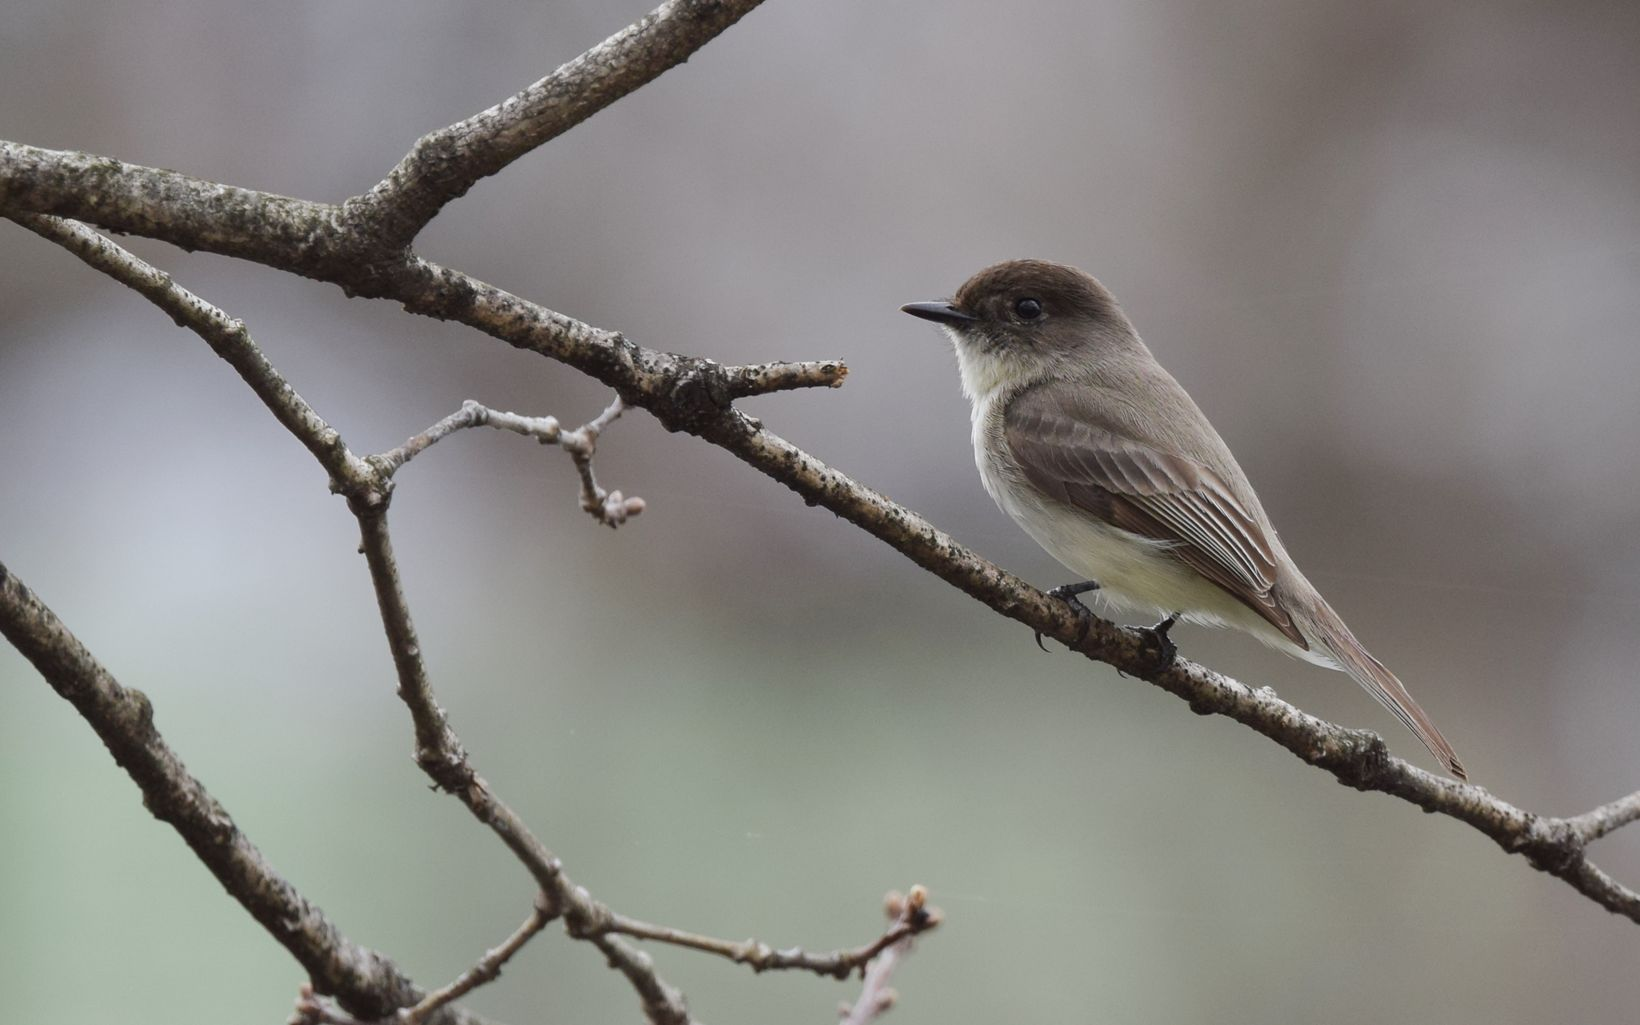 A gray bird rests on a thin brown branch.